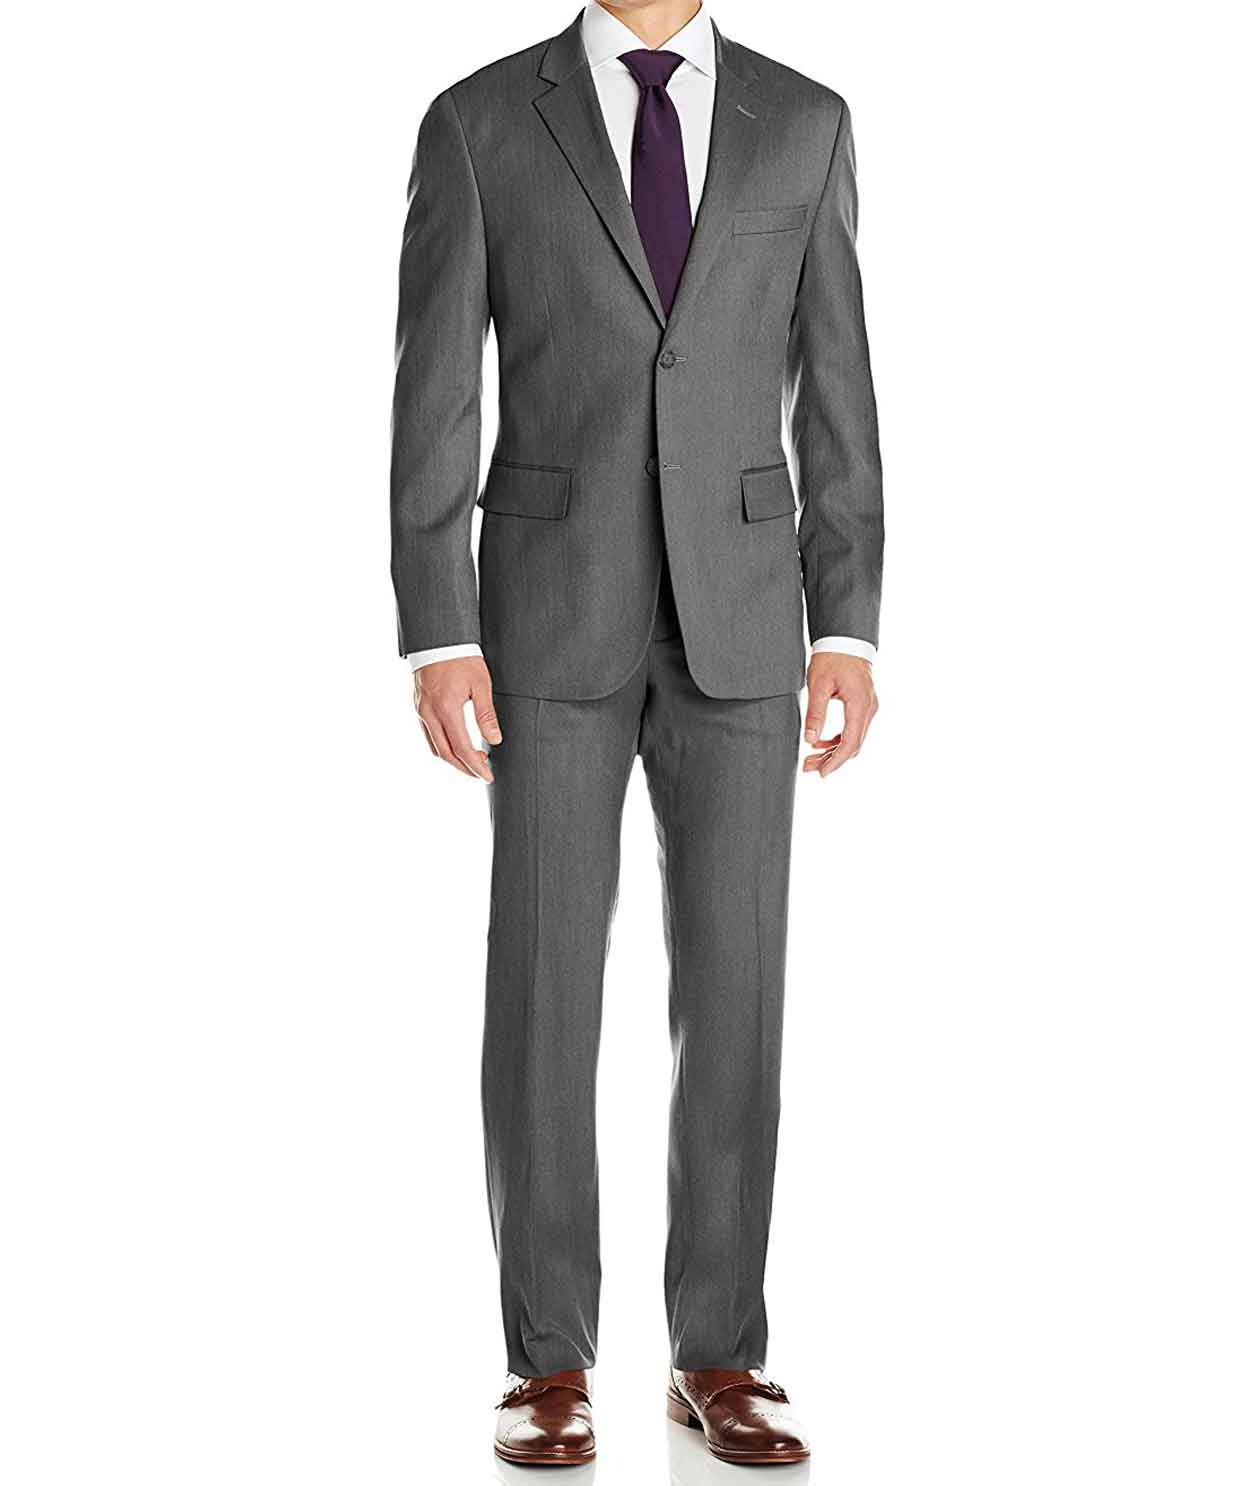 Free shipping on men's suits, suit jackets and sport coats at jwl-network.ga Shop Nordstrom Men's Shop, Boss and more from the best brands. Totally free shipping and returns.